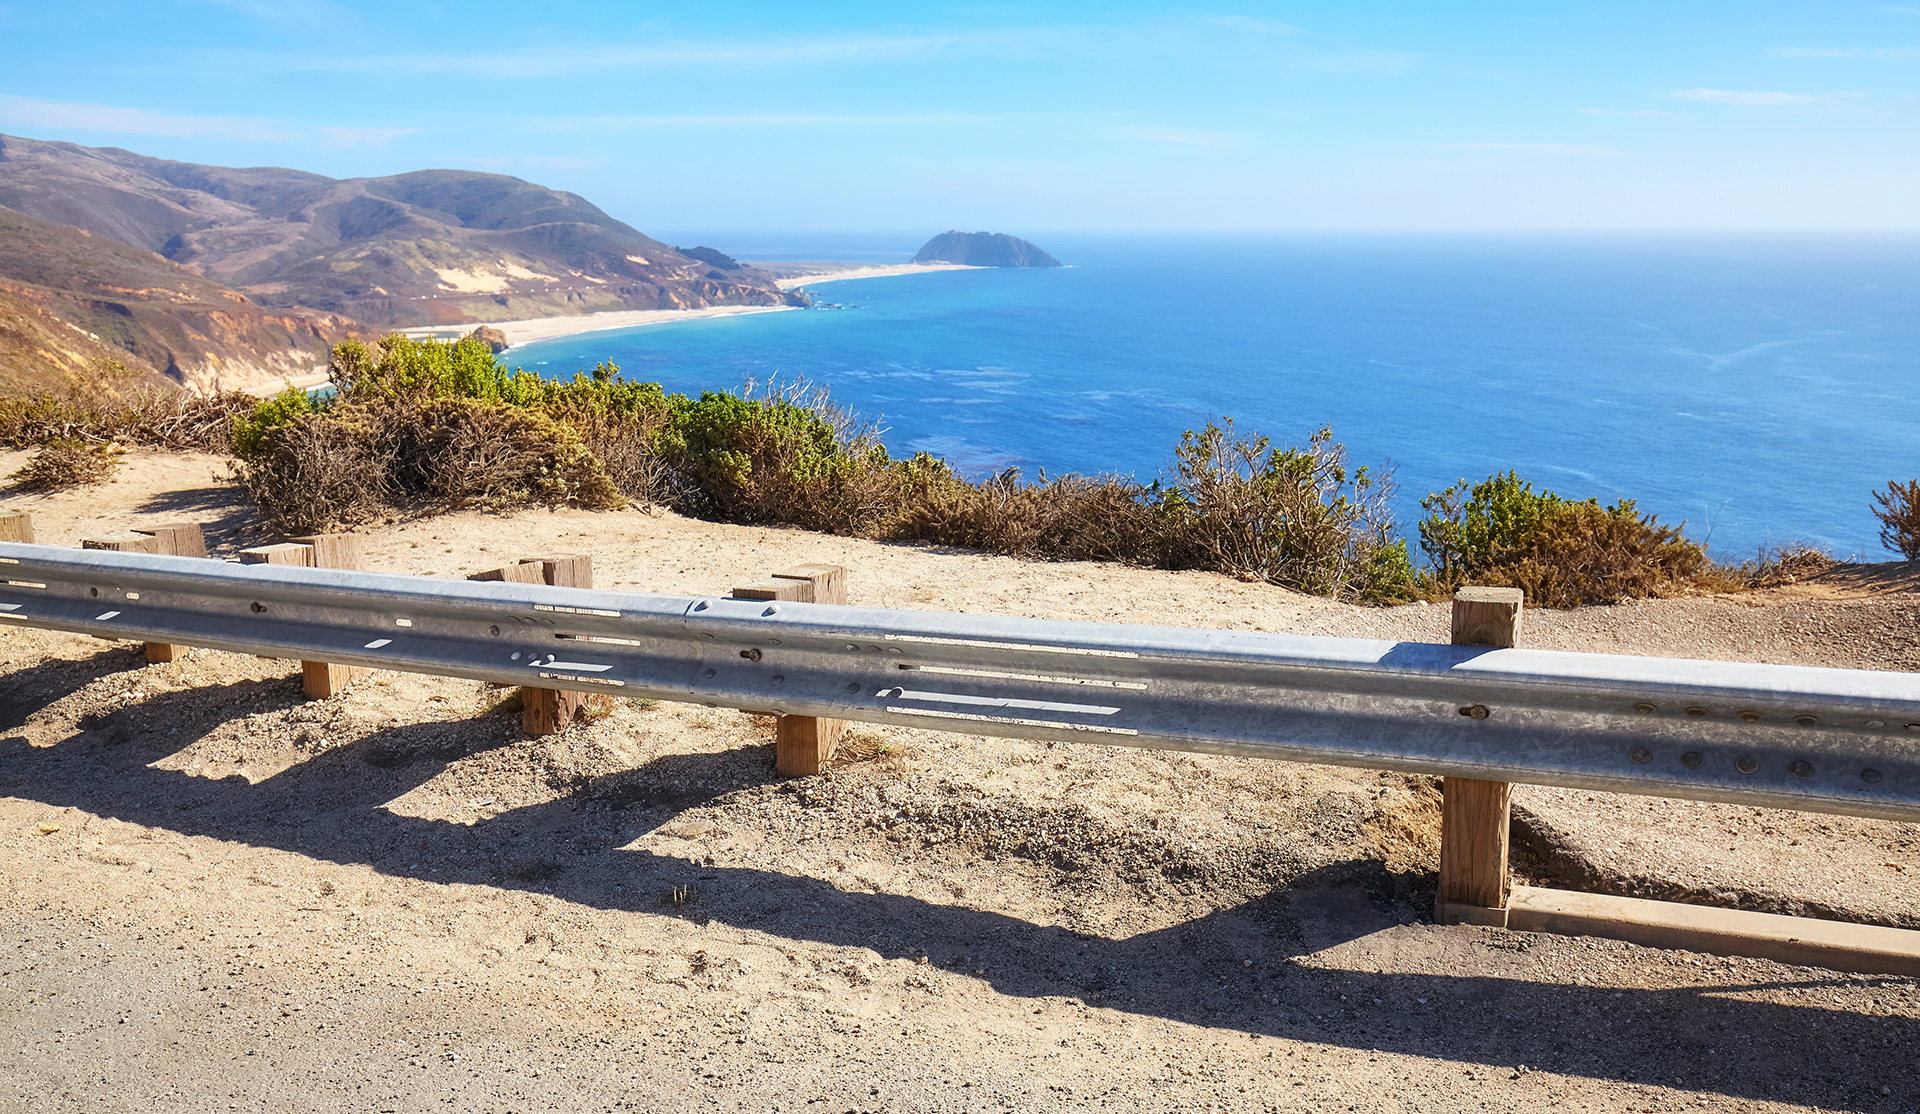 Traffic barrier along Pacific Coast Highway, selective focus, California, USA.